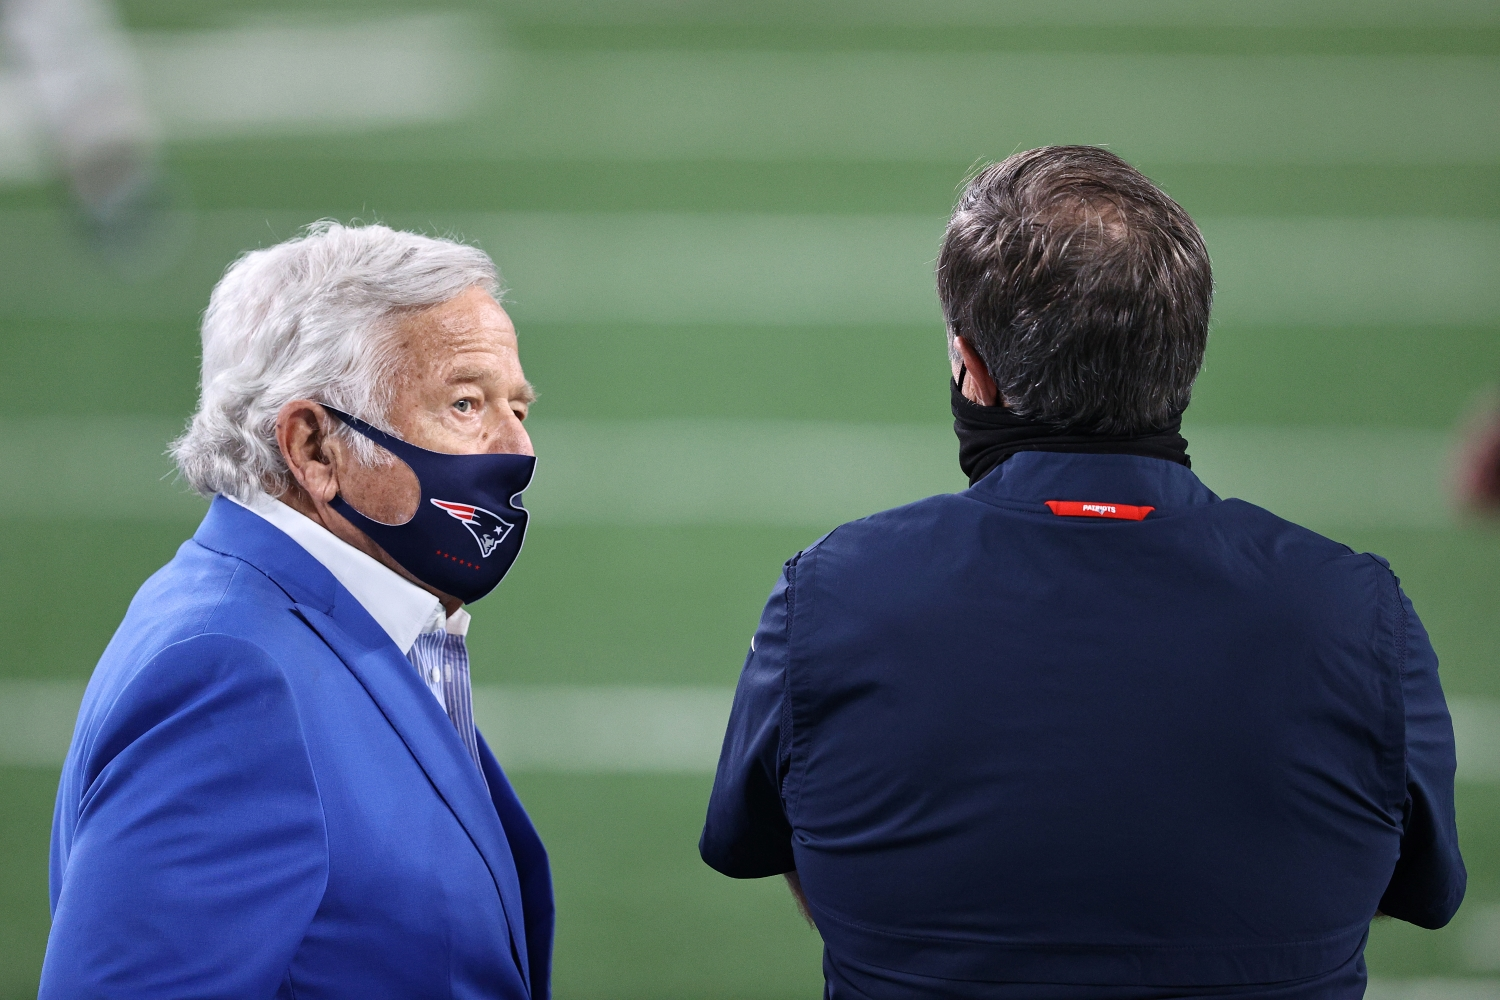 Patriots owner Robert Kraft stands next to head coach Bill Belichick during warmups before a game against the New York Jets from the 2020 NFL season.